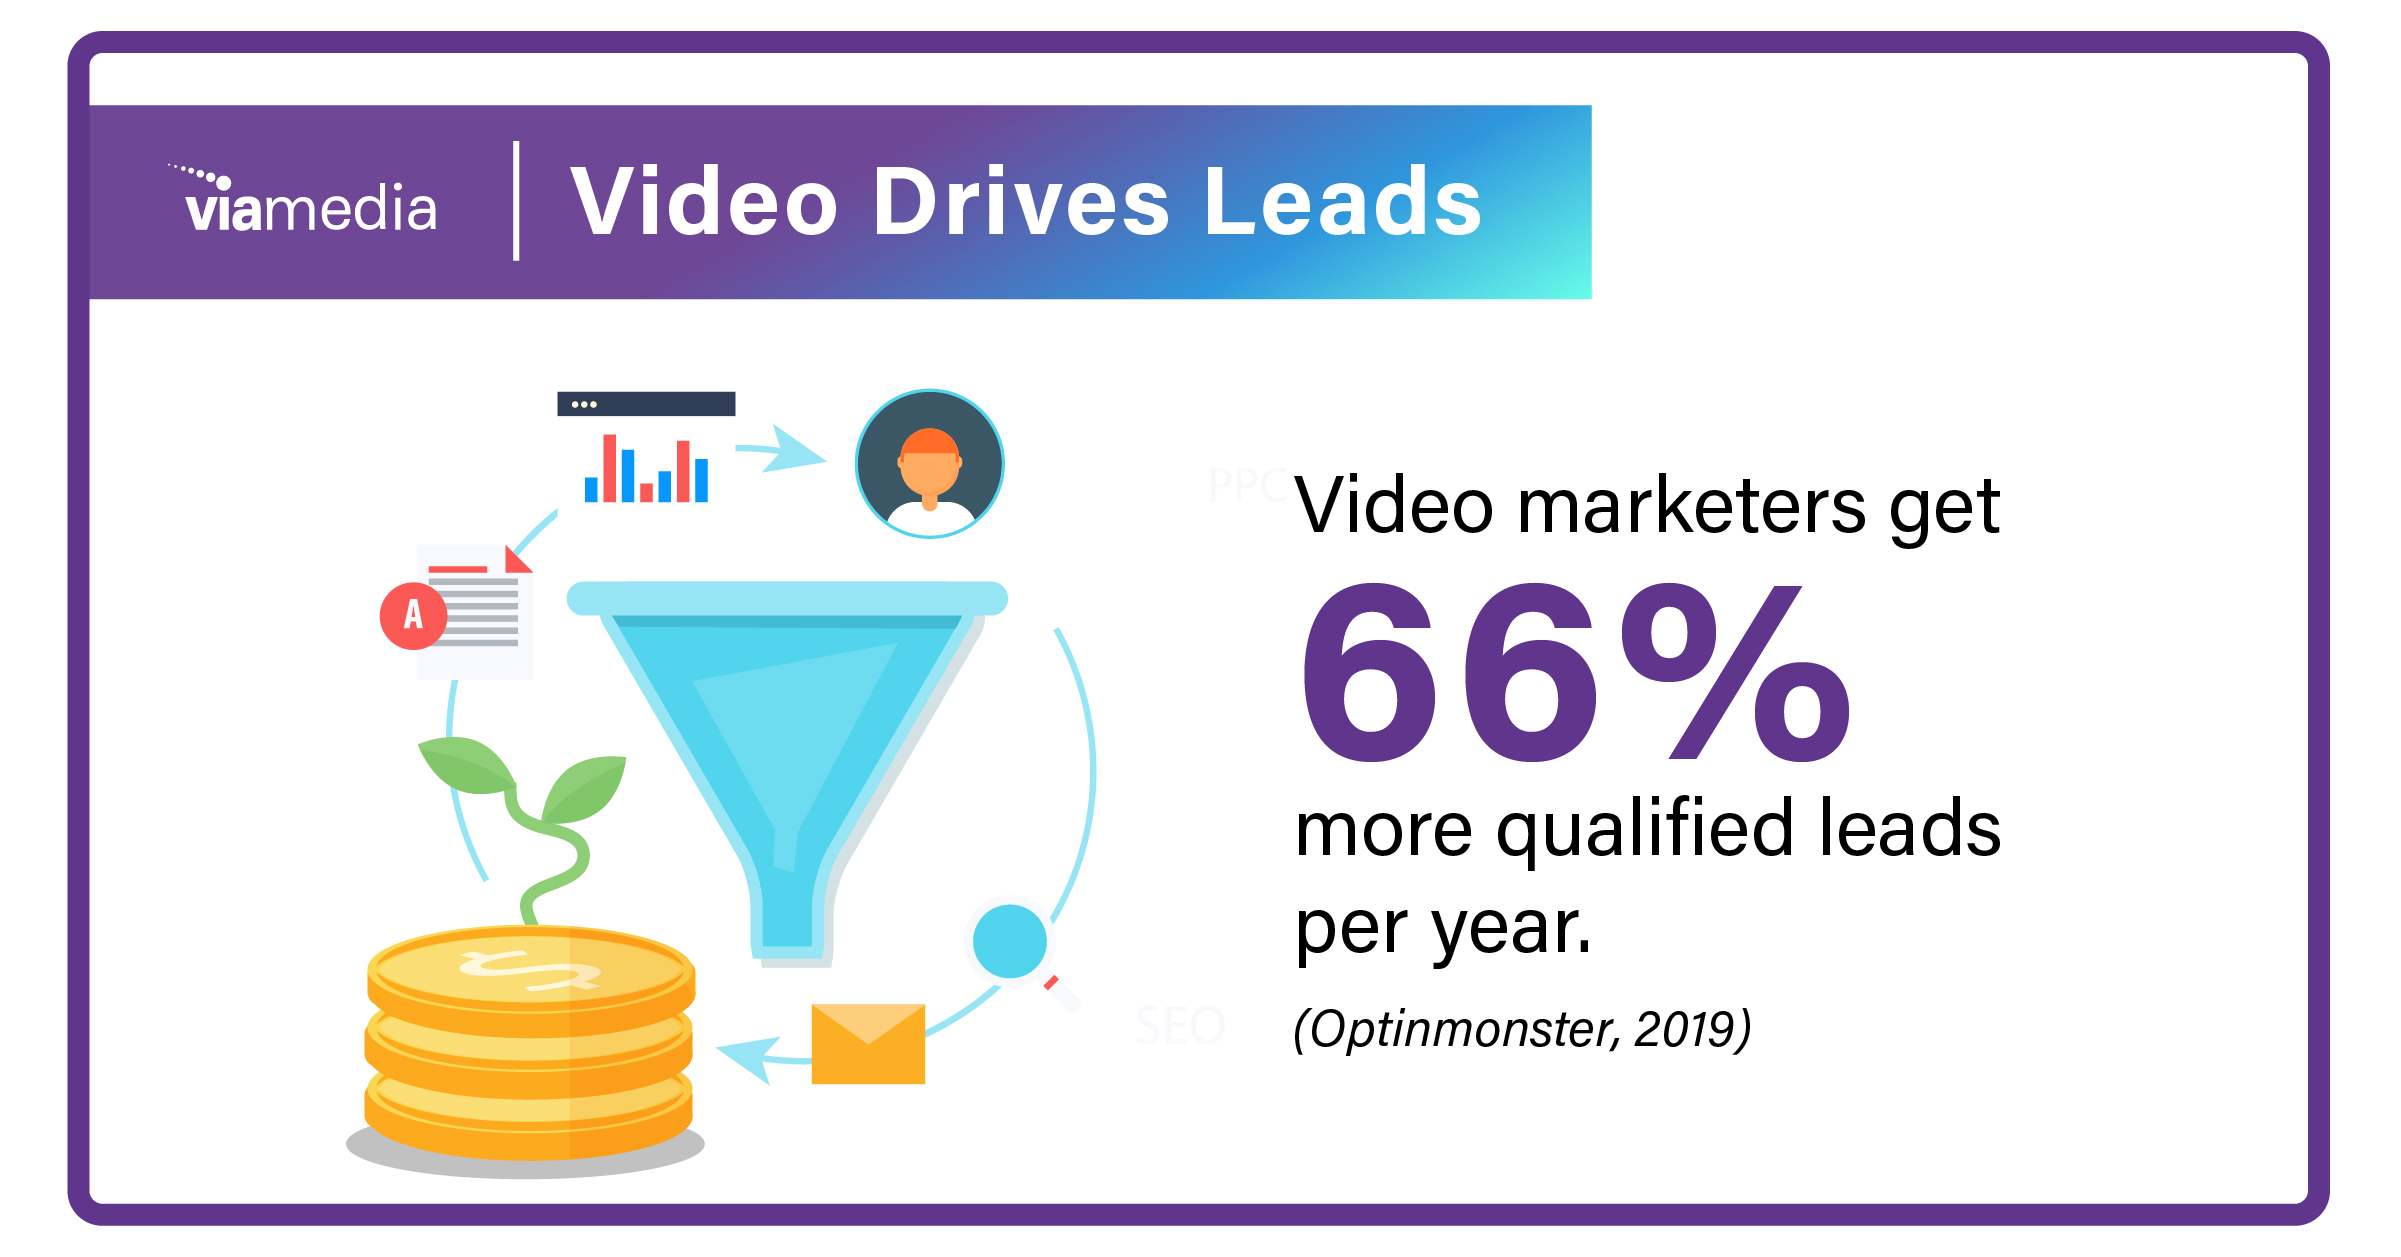 video drives leads-1